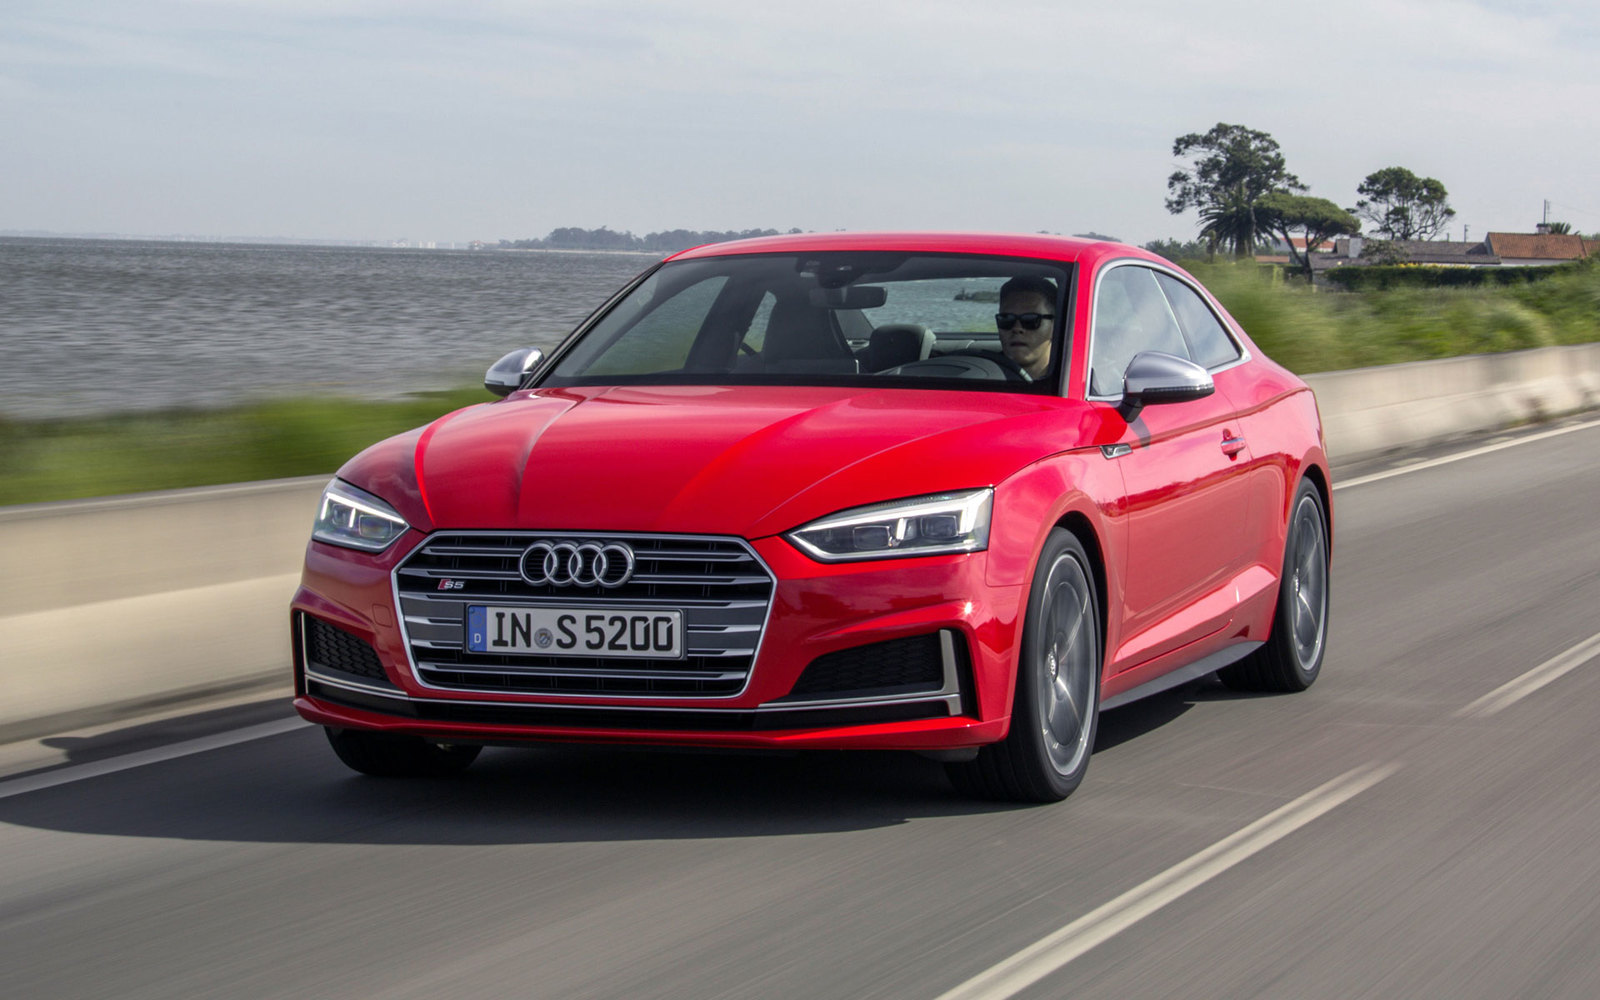 Neues Audi S5 Coupé